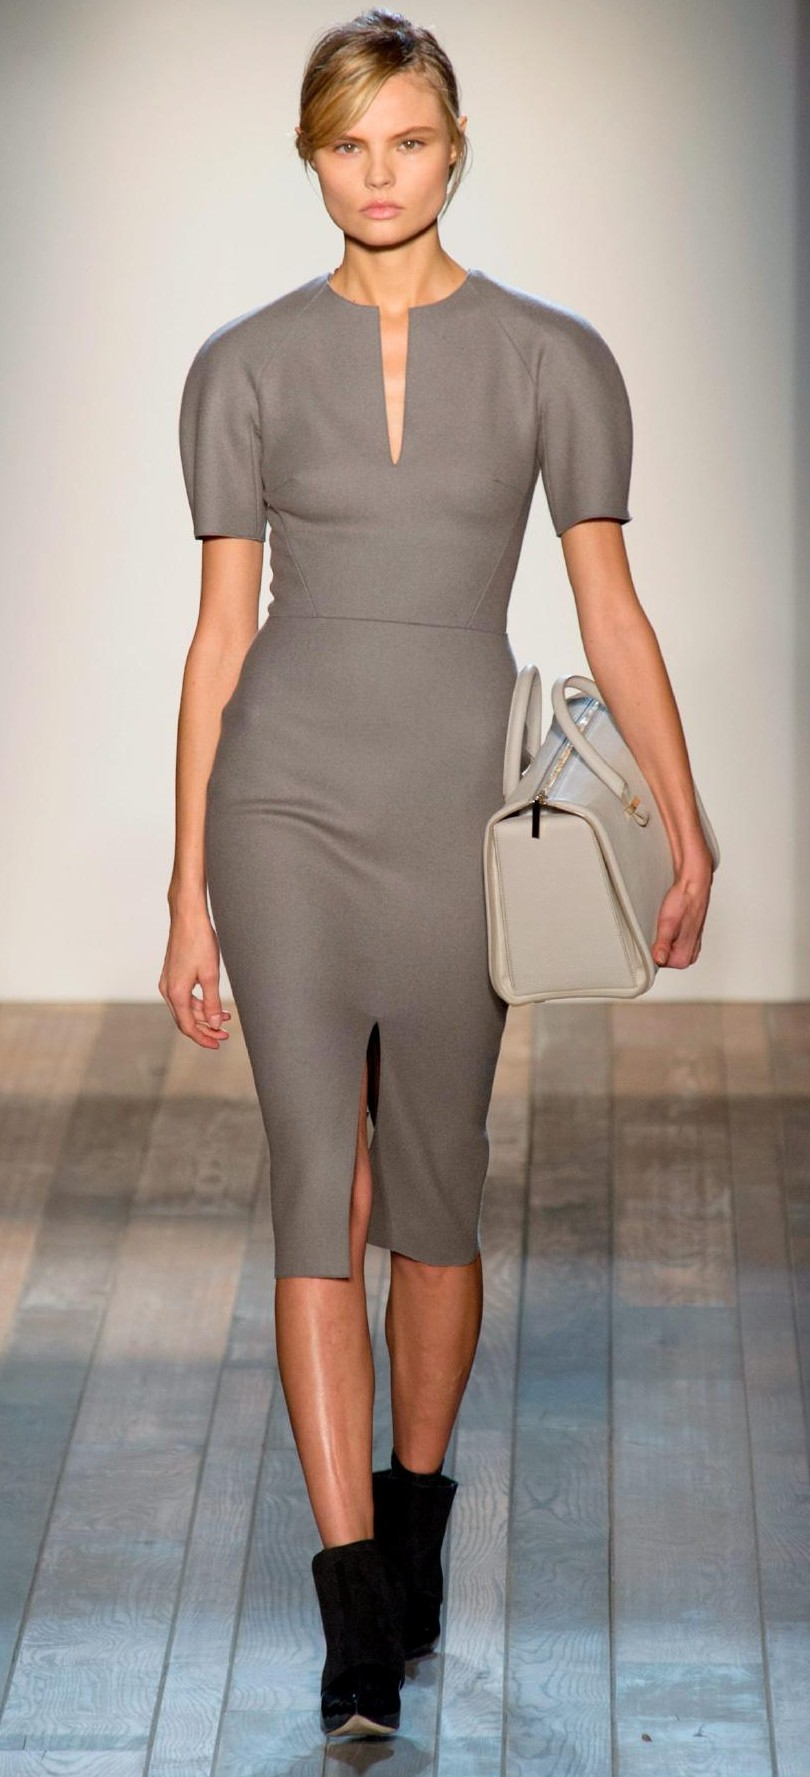 Stormy weather sleek dress